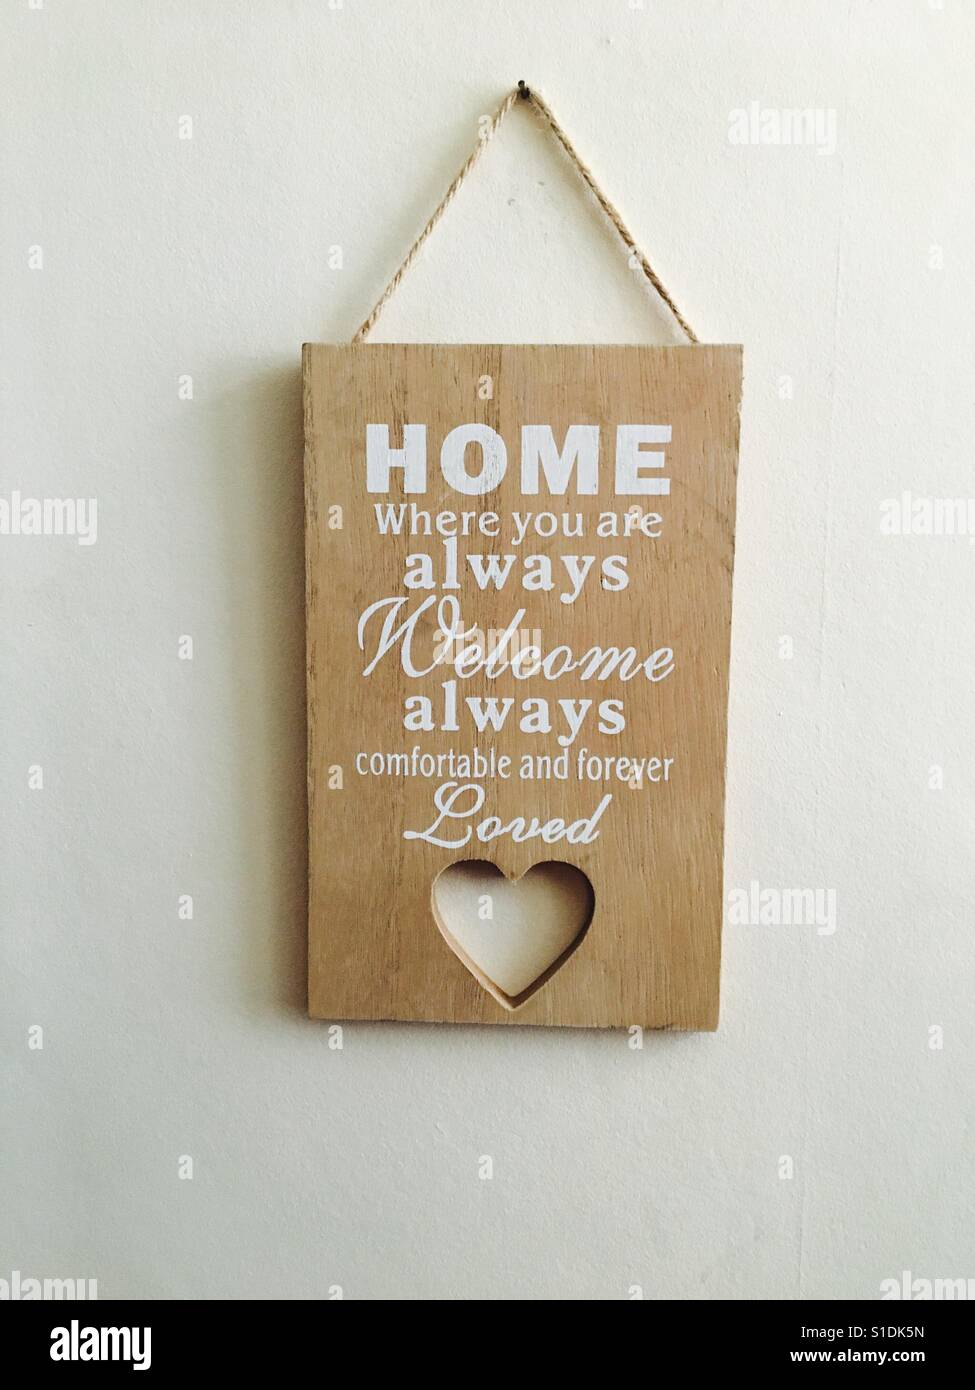 Home sweet home wooden heart. - Stock Image